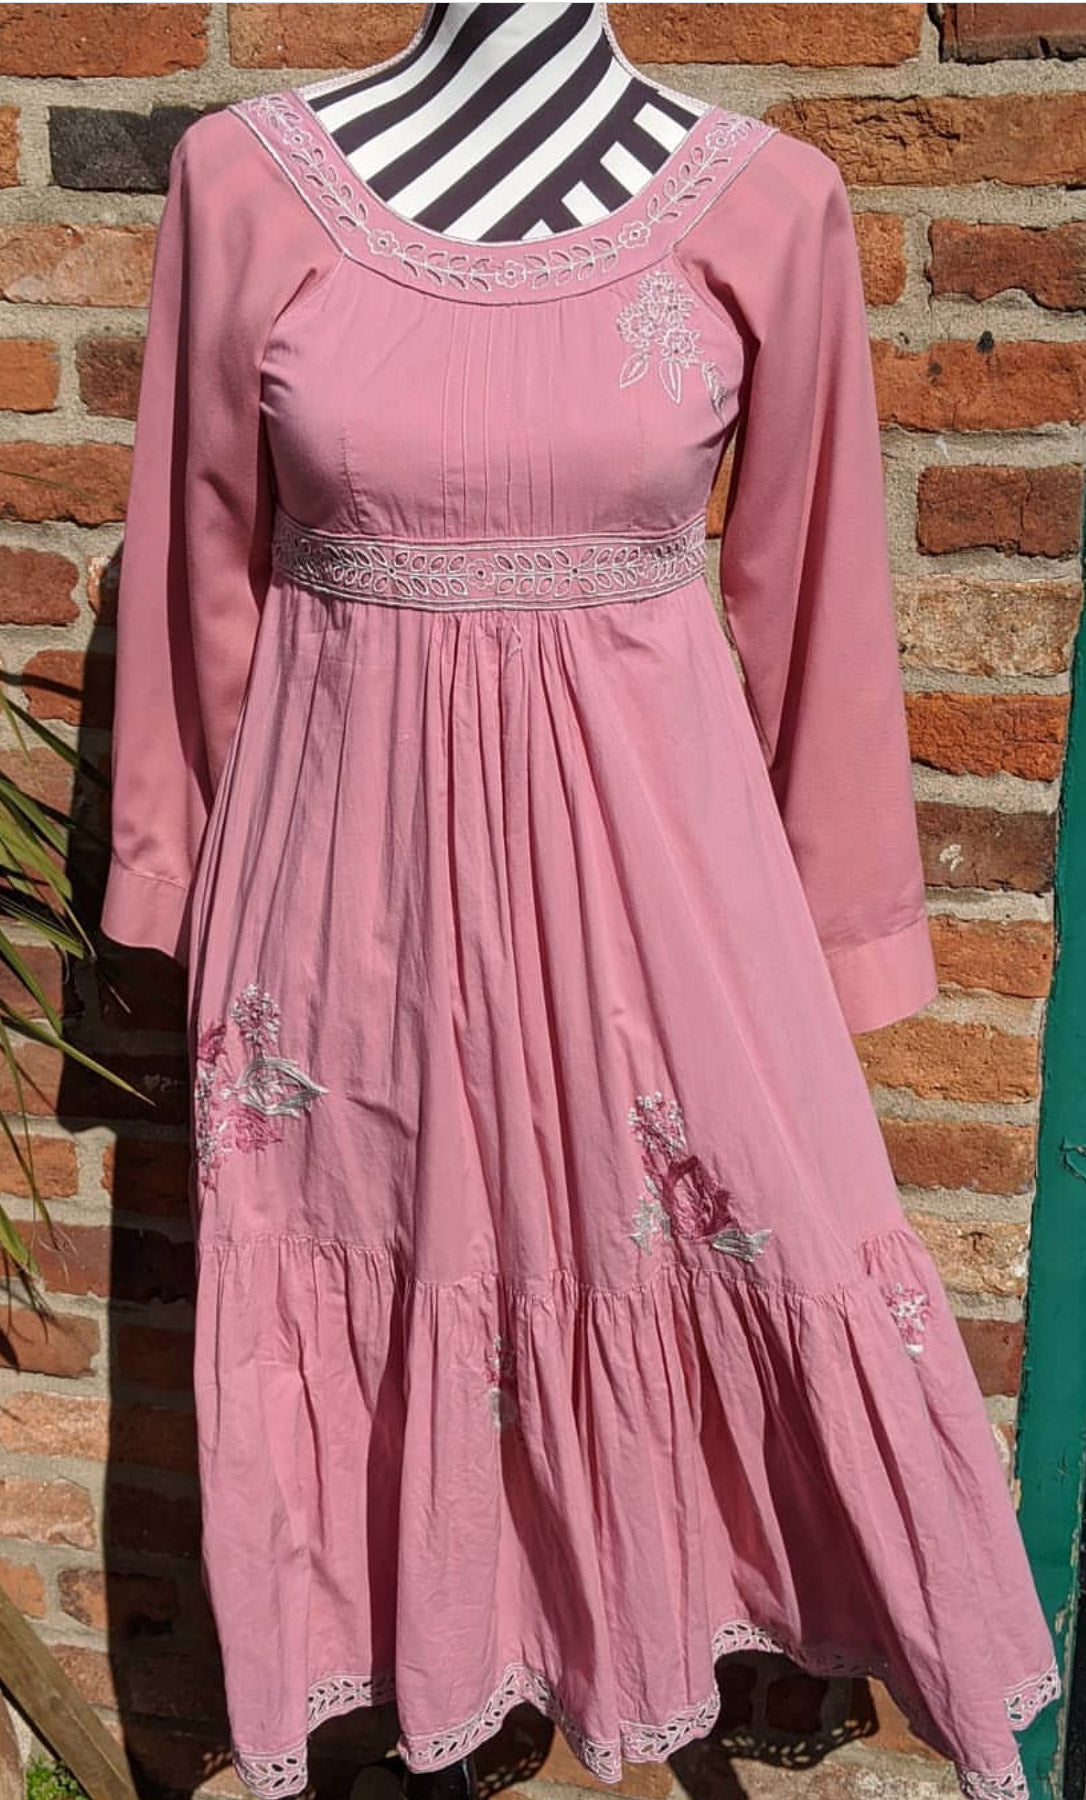 Vintage boho cotton dress, approx size 6